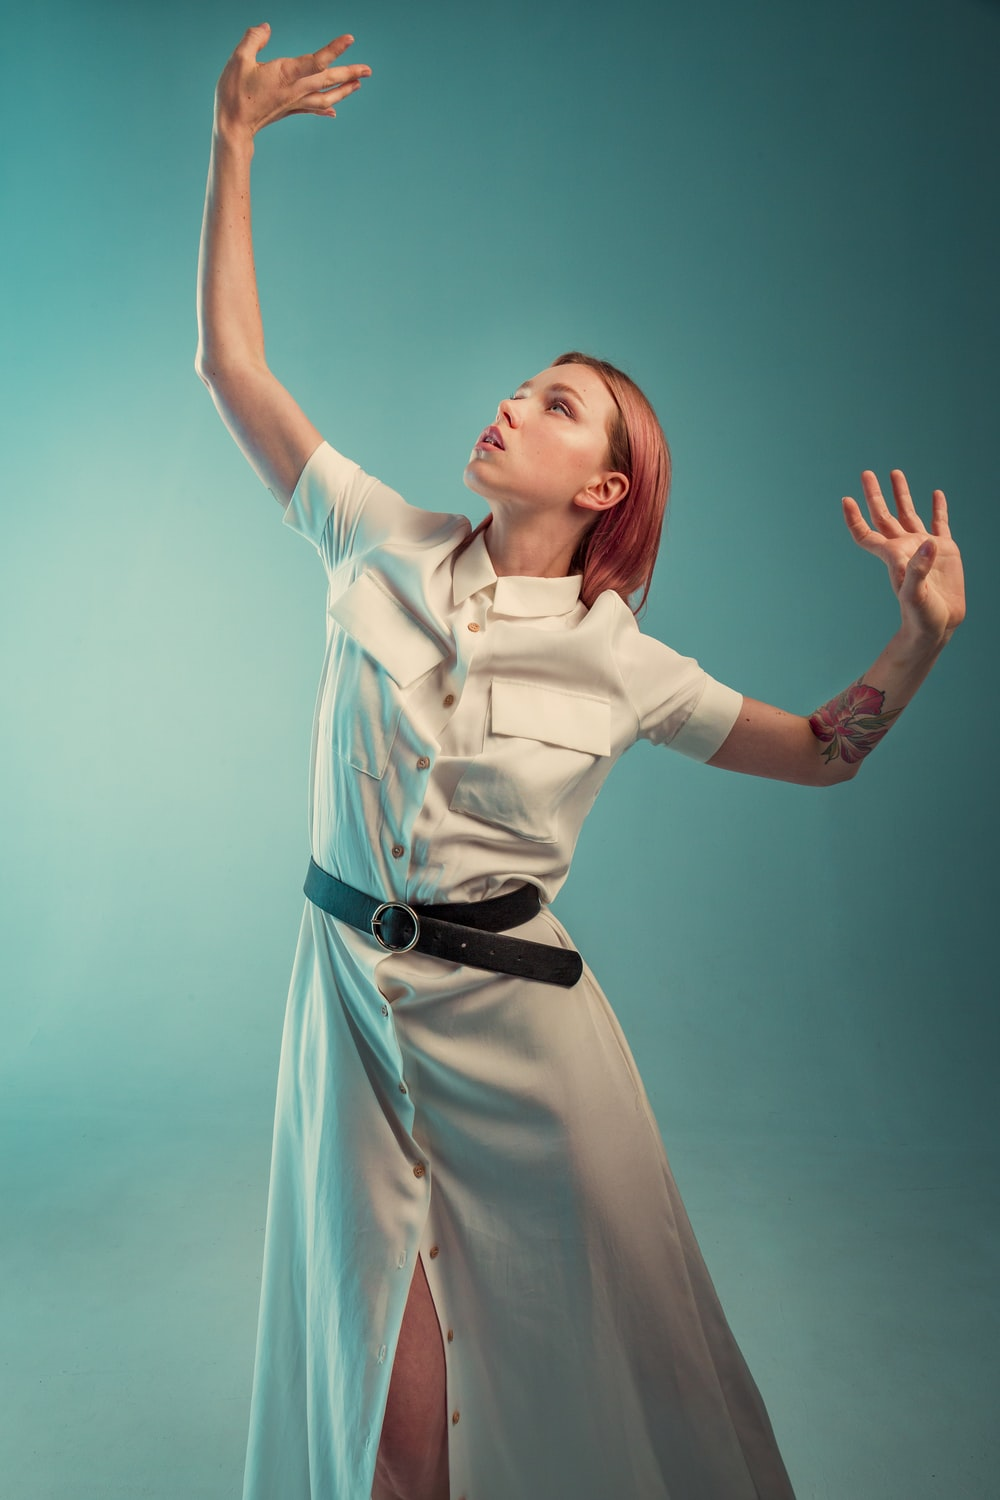 woman in white dress shirt with black leather belt